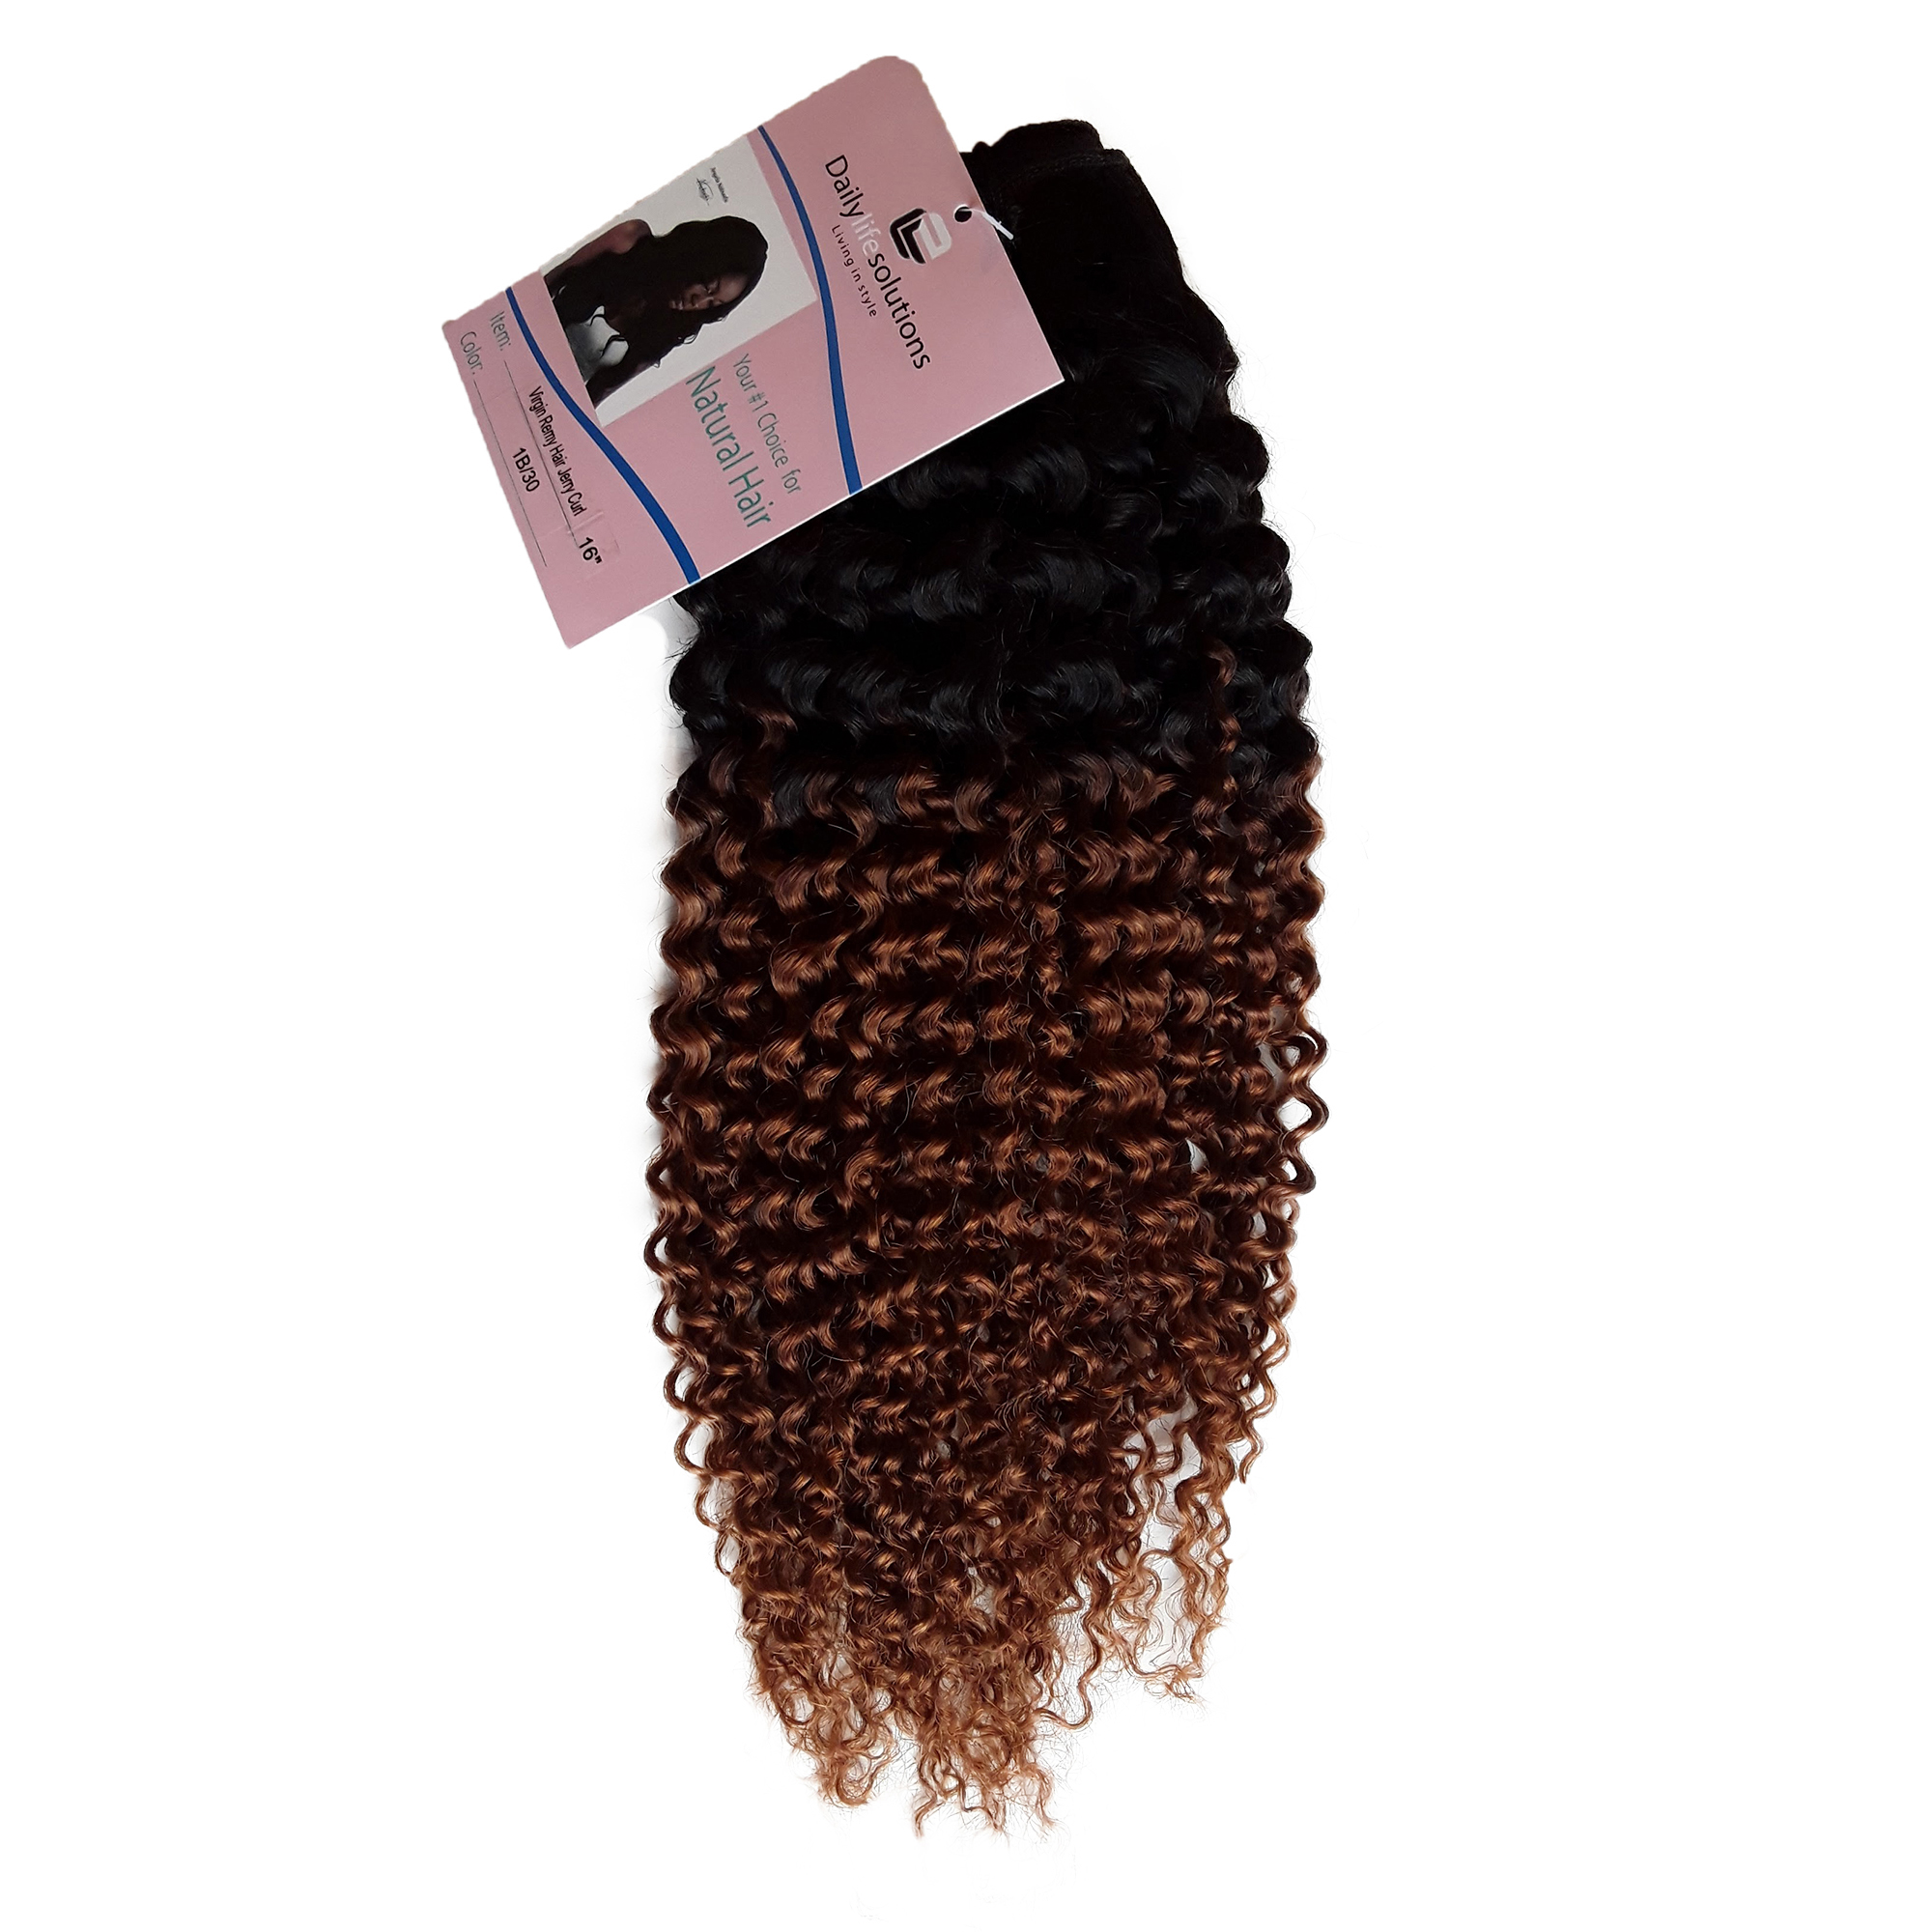 (Peruvian 100% human hair straight 100g per hair) 100% Unprocessed Human Remy Peruvian Hair, Highest Quality Rating of 8A, Sizes 12 inches to 18 inches, (Lace Closure 4″ X 4″ Curly) Each Bundle 100 gram. If you're looking for natural,…